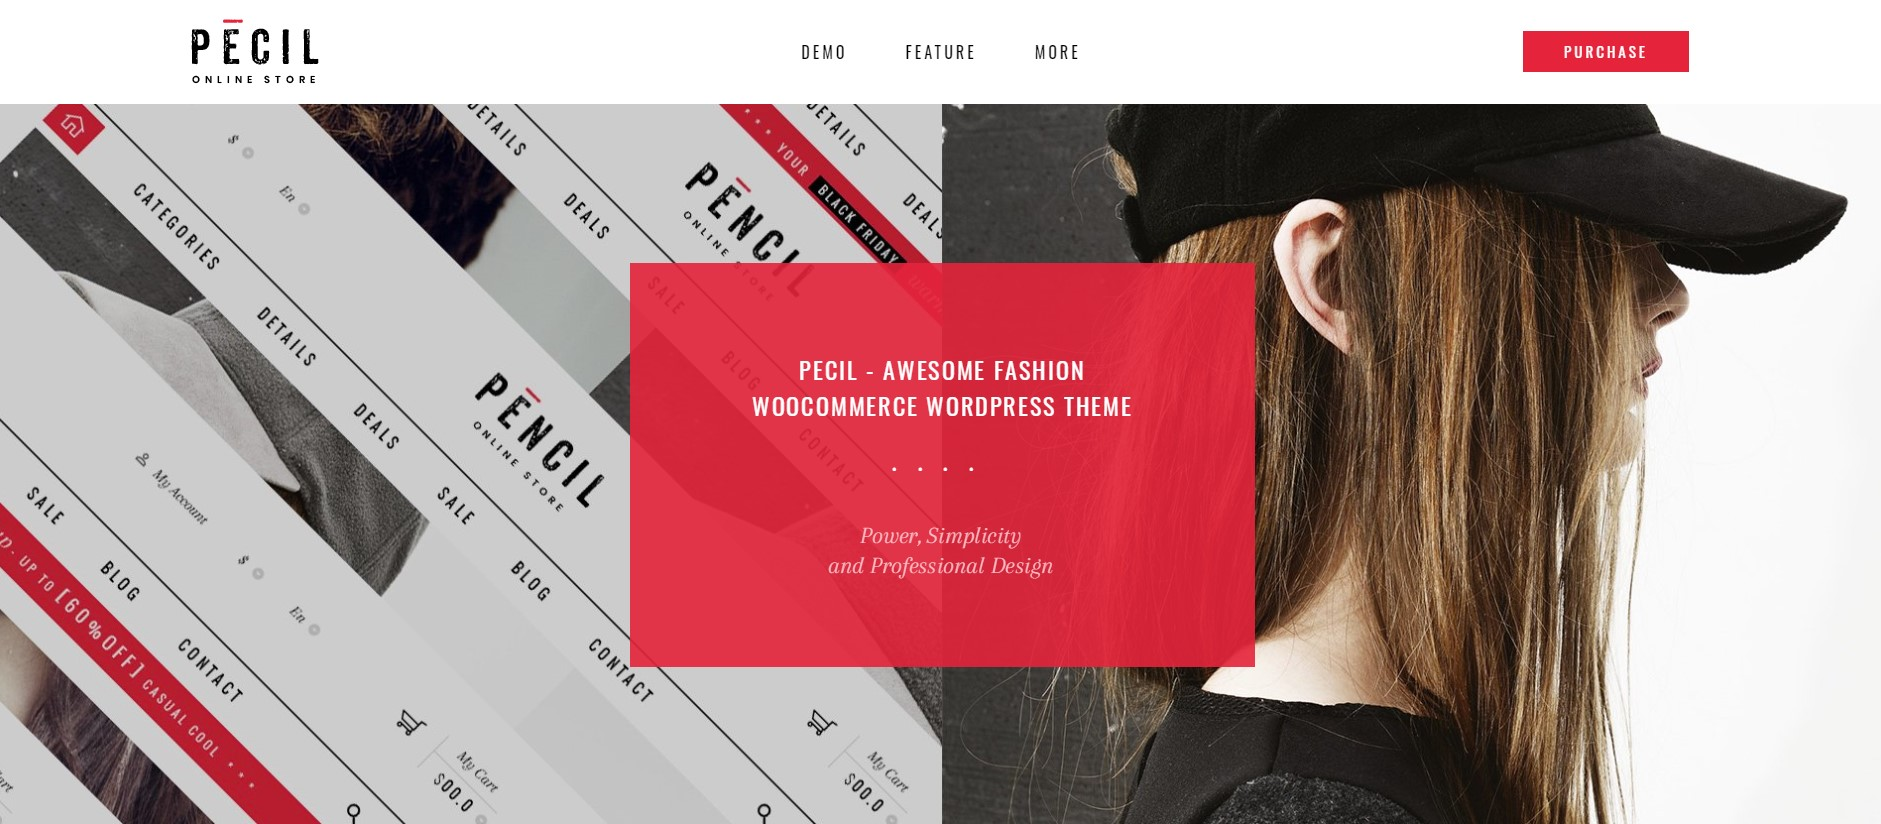 Pecil - Fashion WordPress Theme